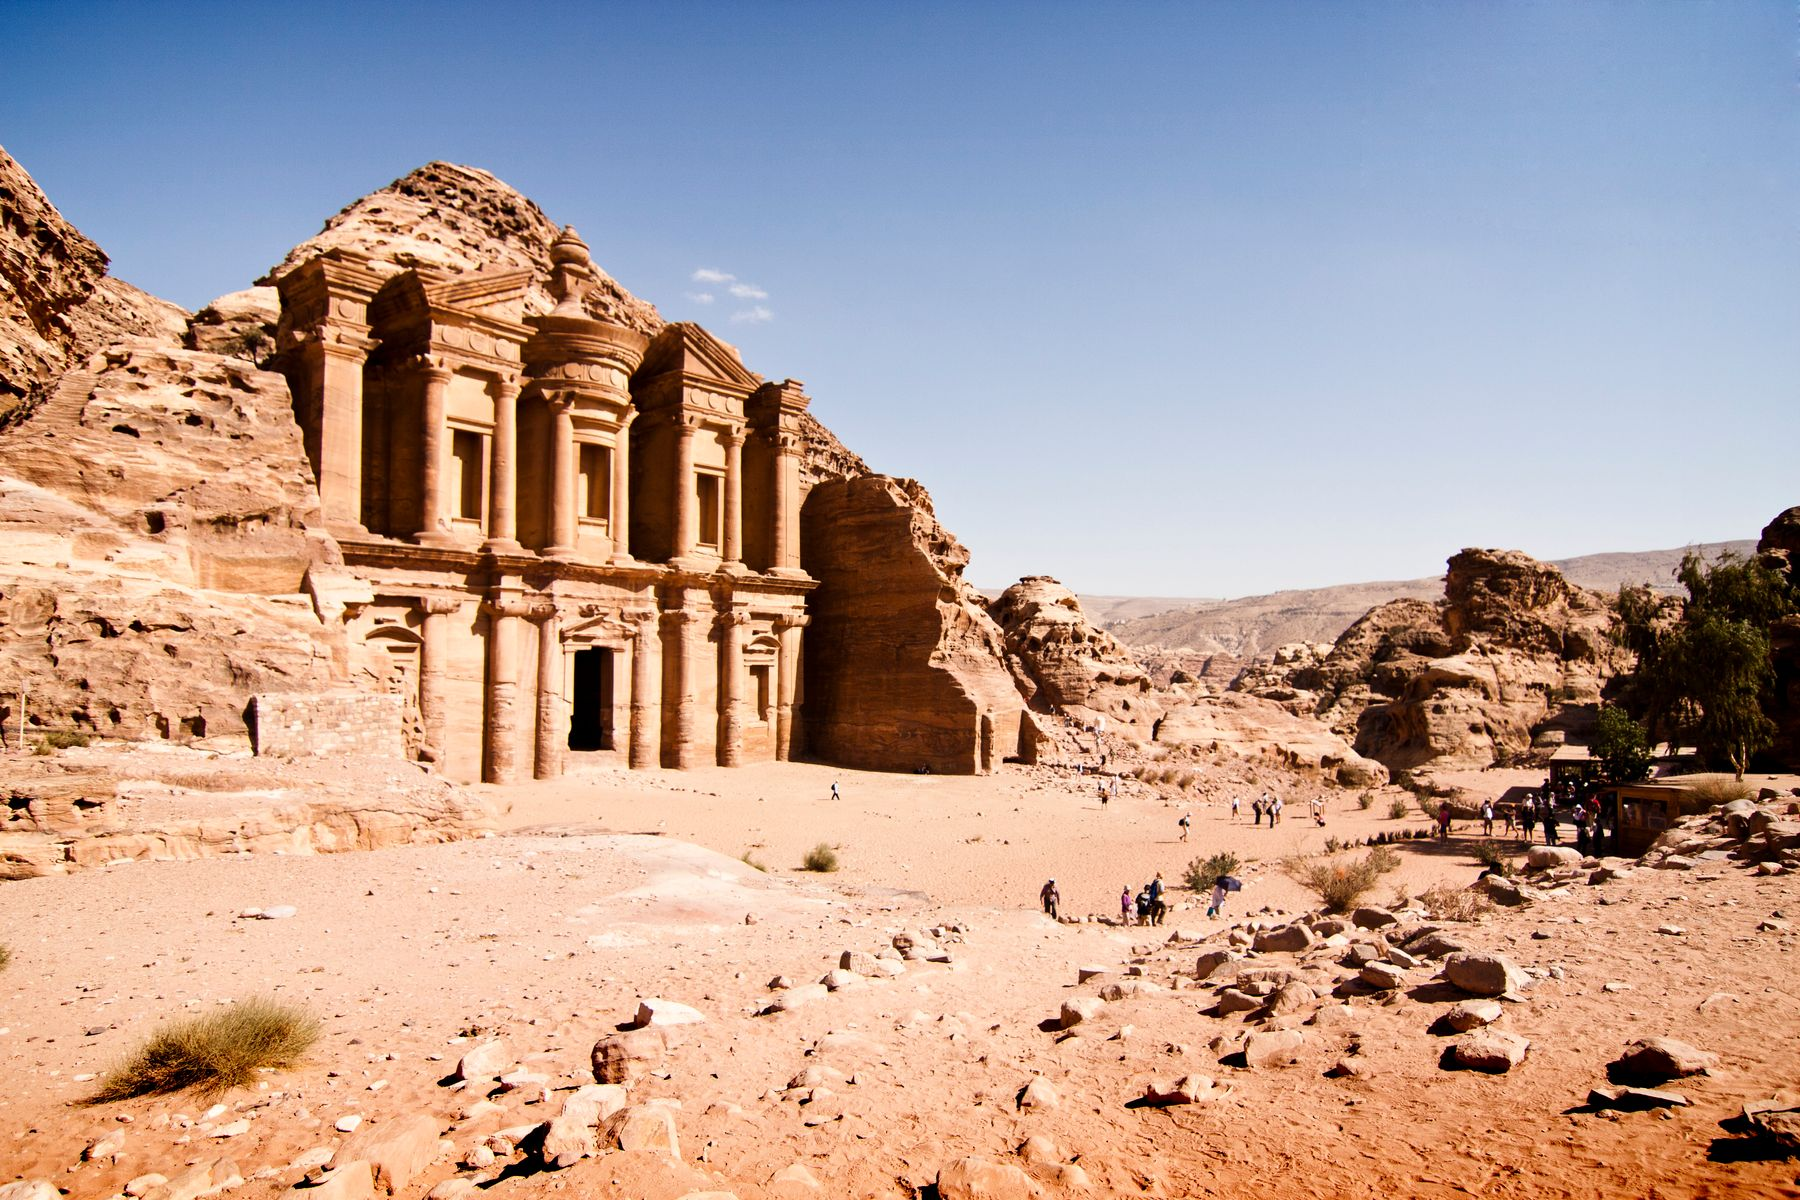 The ruins of Petra in Jordan: a beautiful building carved into the desert rock, dwarving tourists in the foreground